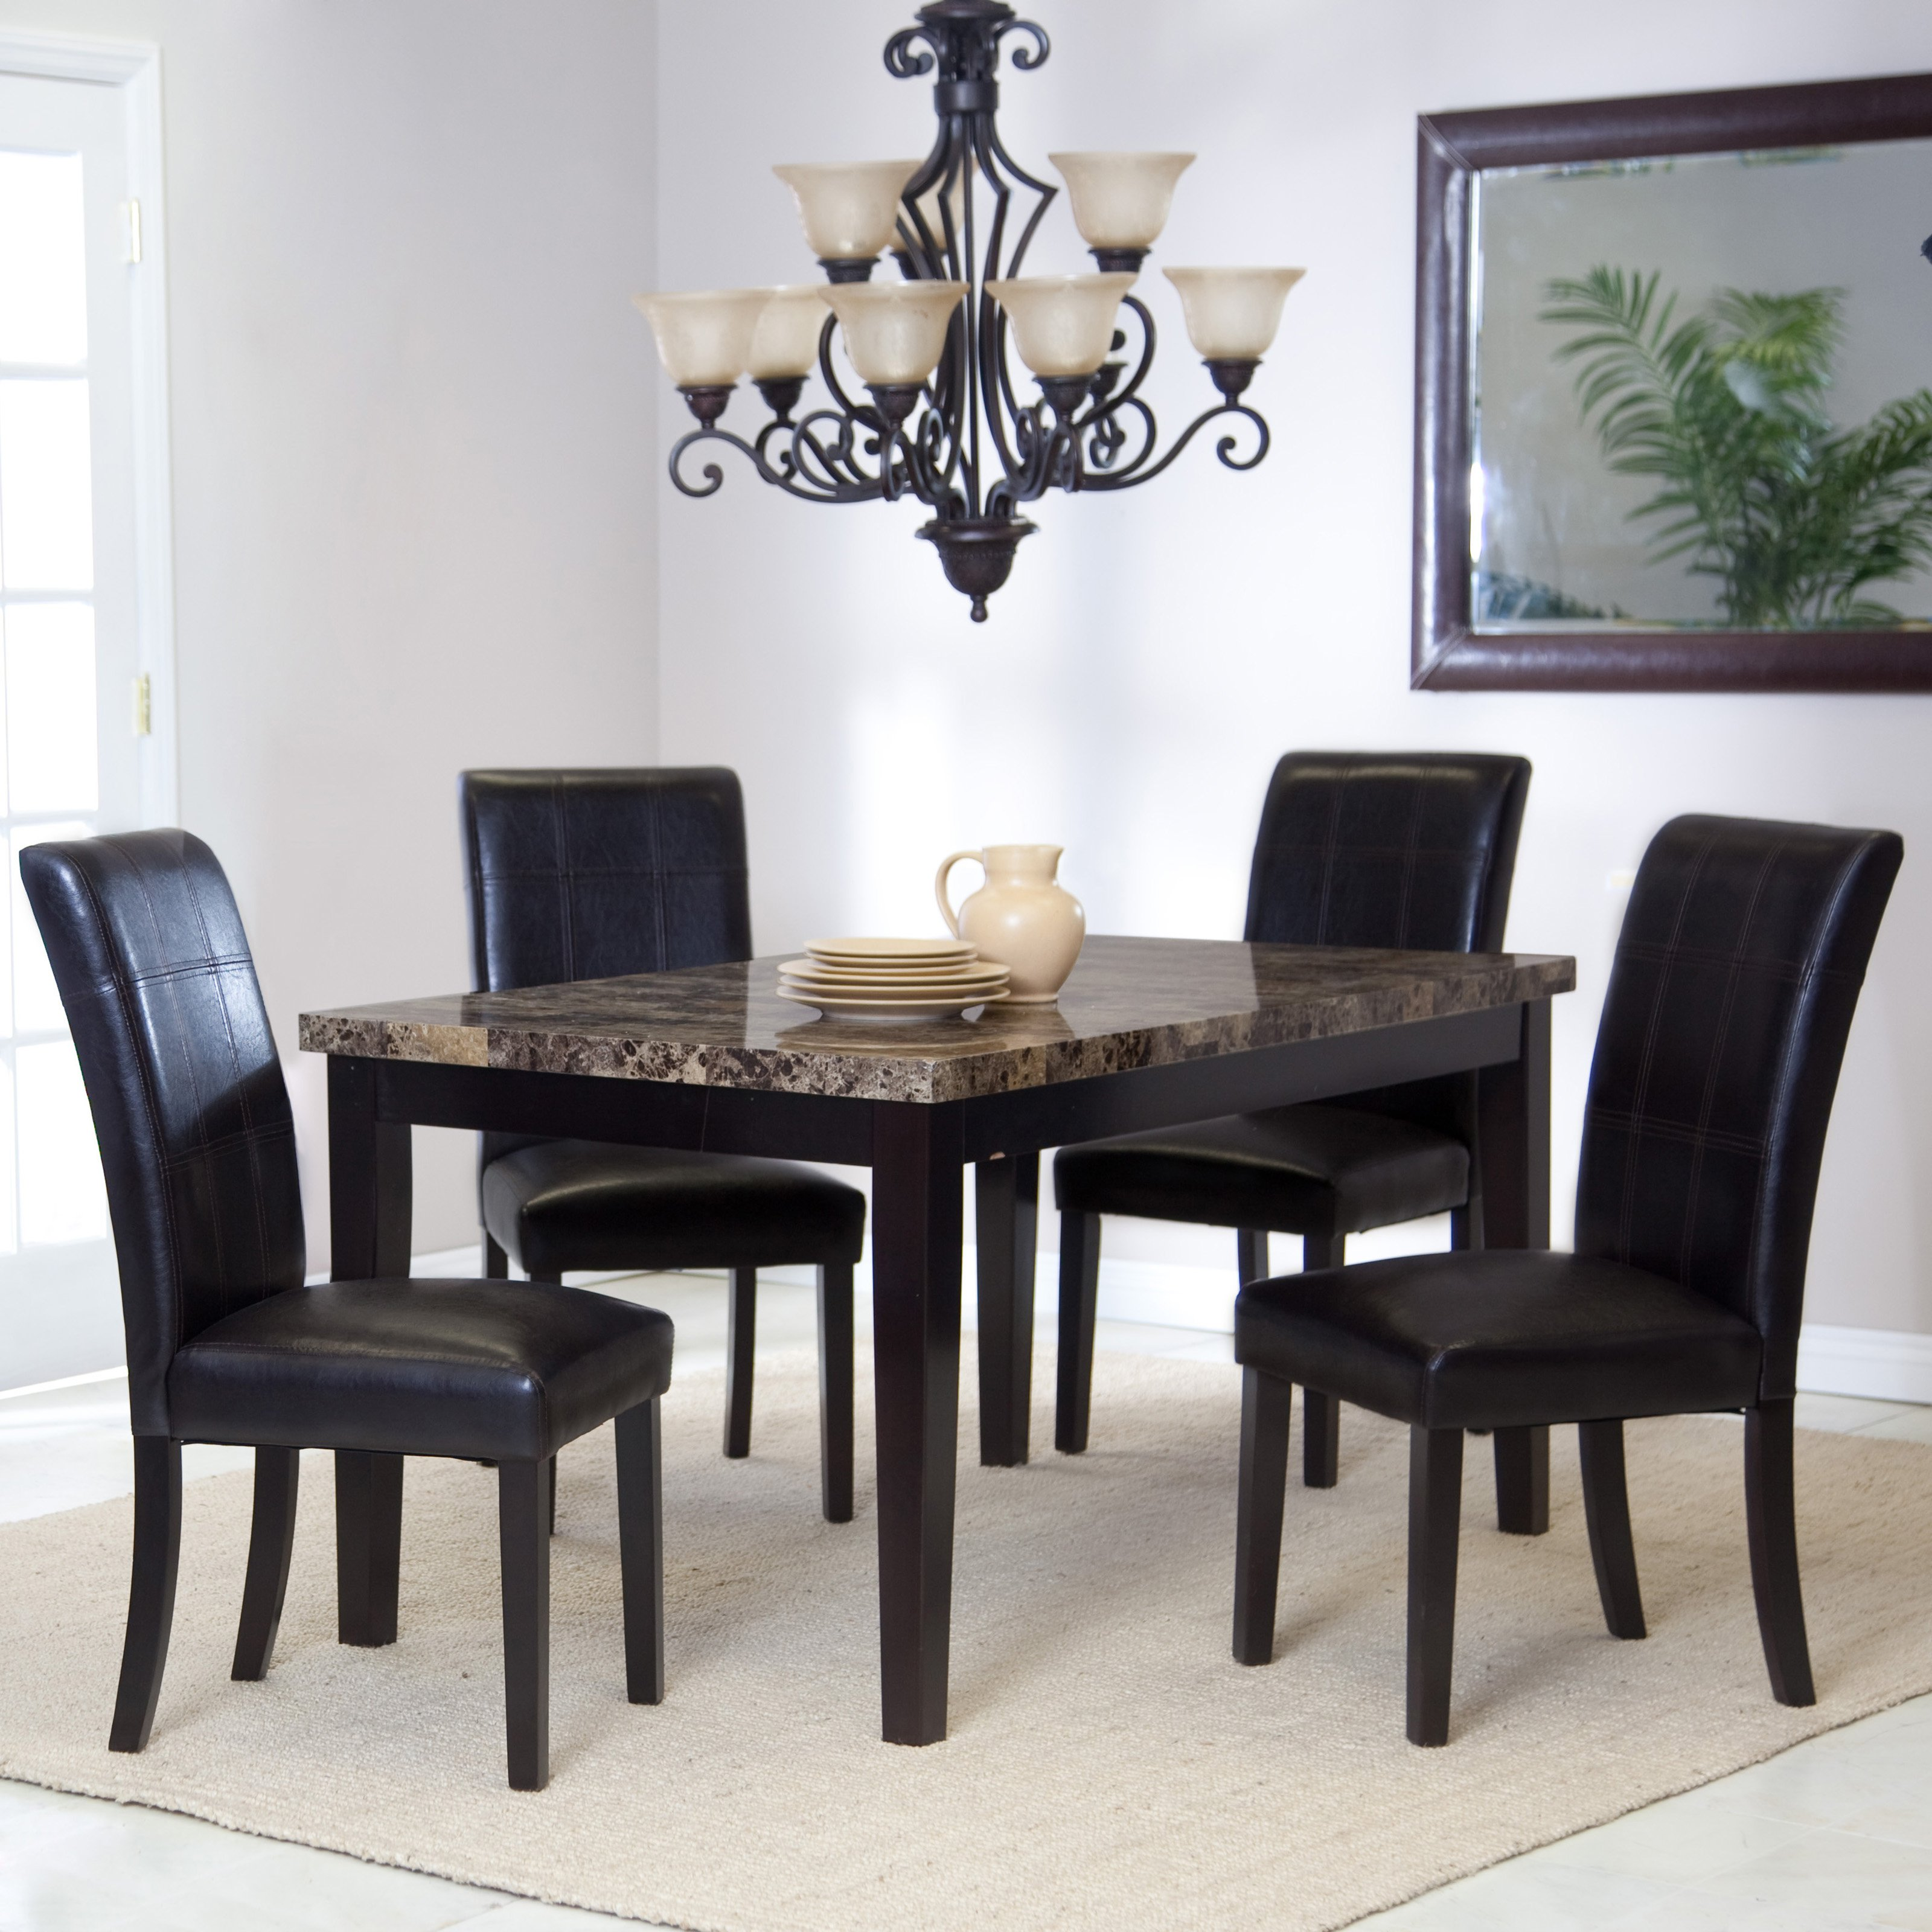 Unique black dining table and chairs palazzo dining table | hayneedle hgxfdfs